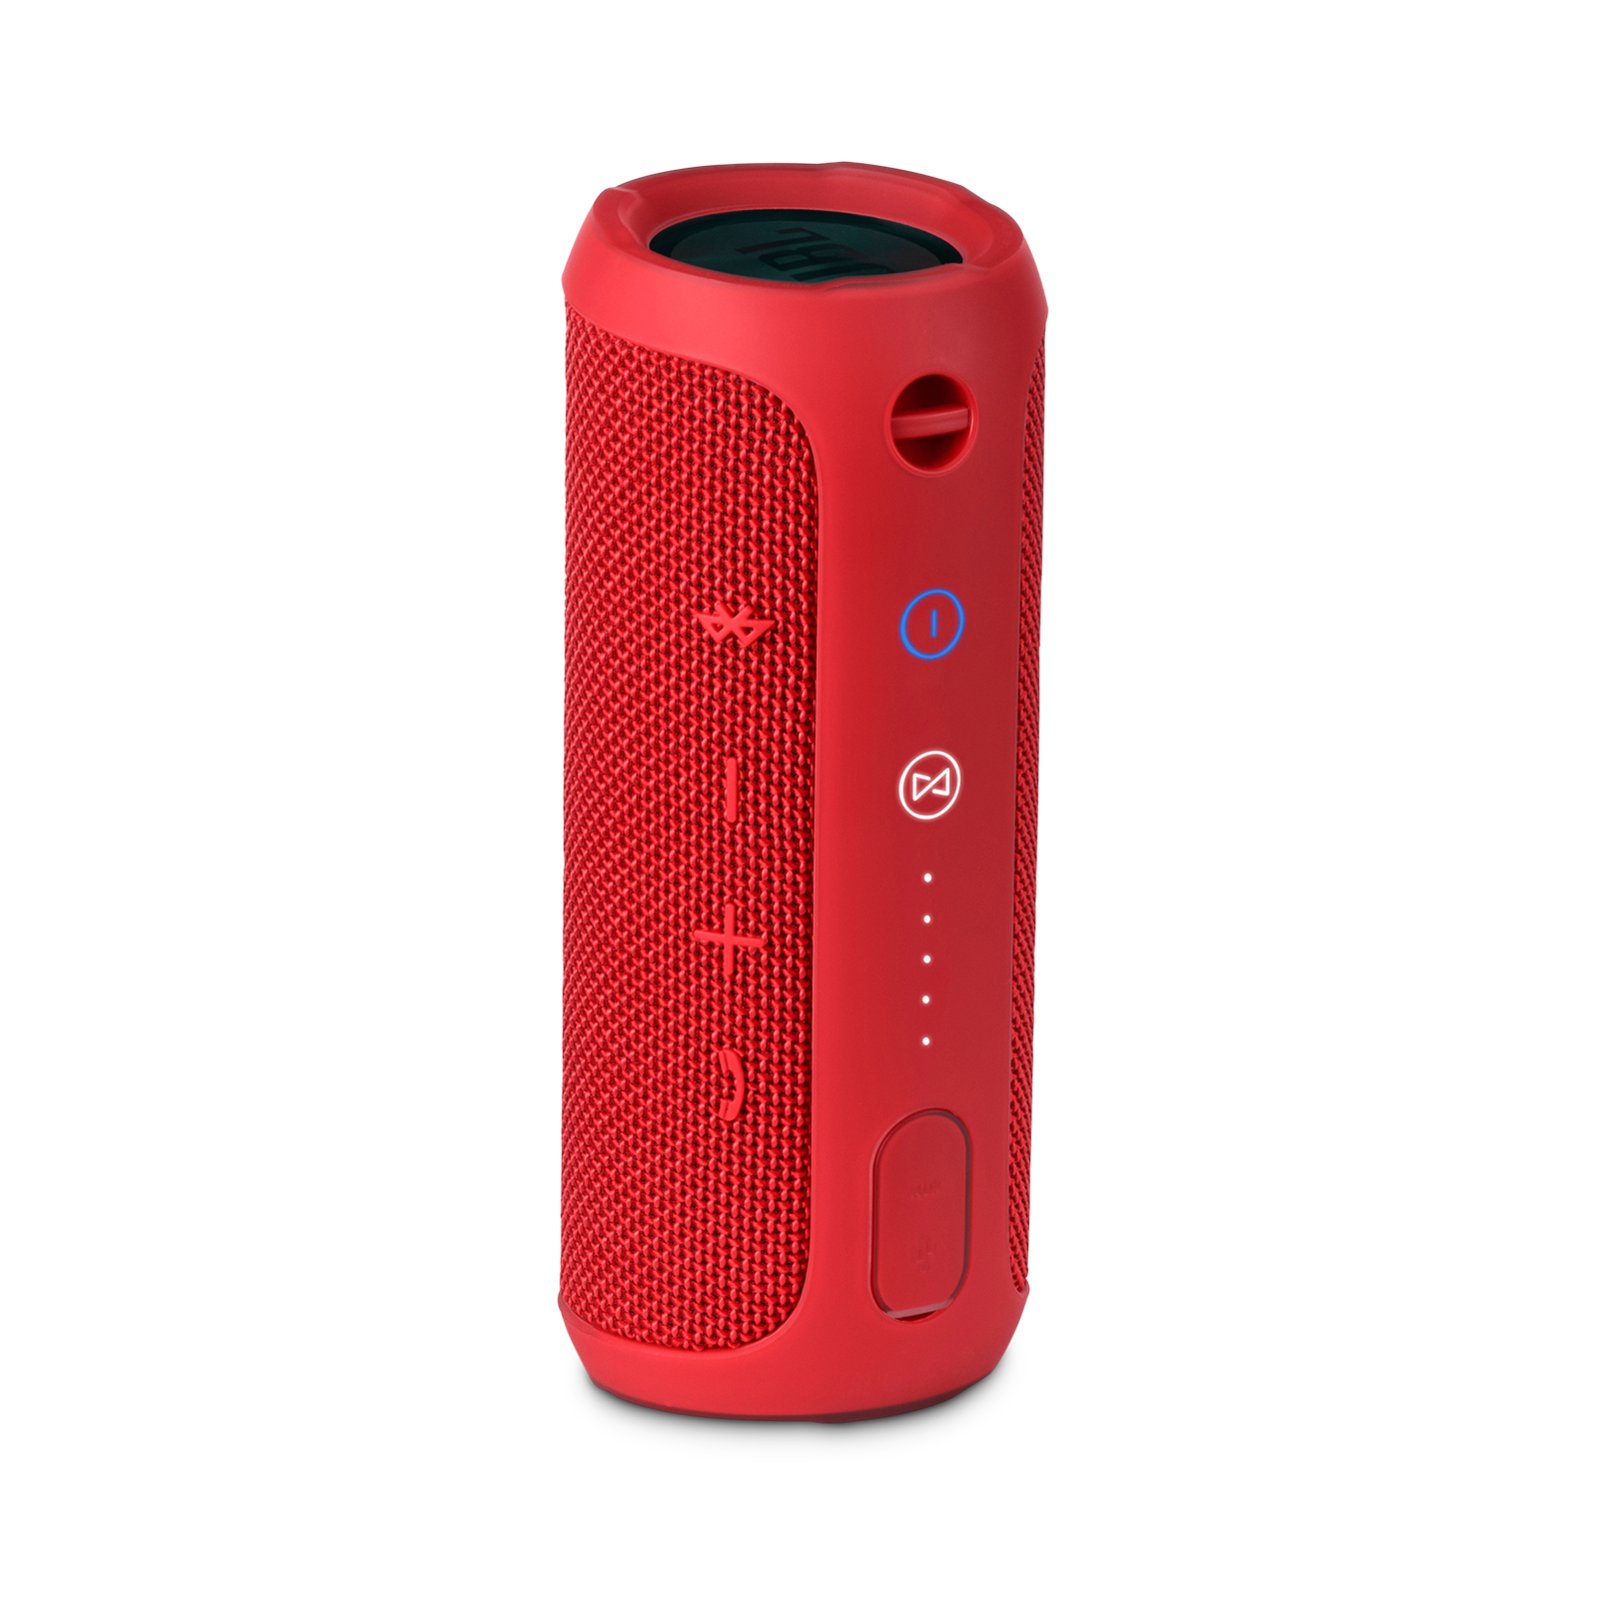 JBL Flip 3 - Red - Splashproof portable Bluetooth speaker with powerful sound and speakerphone technology - Back